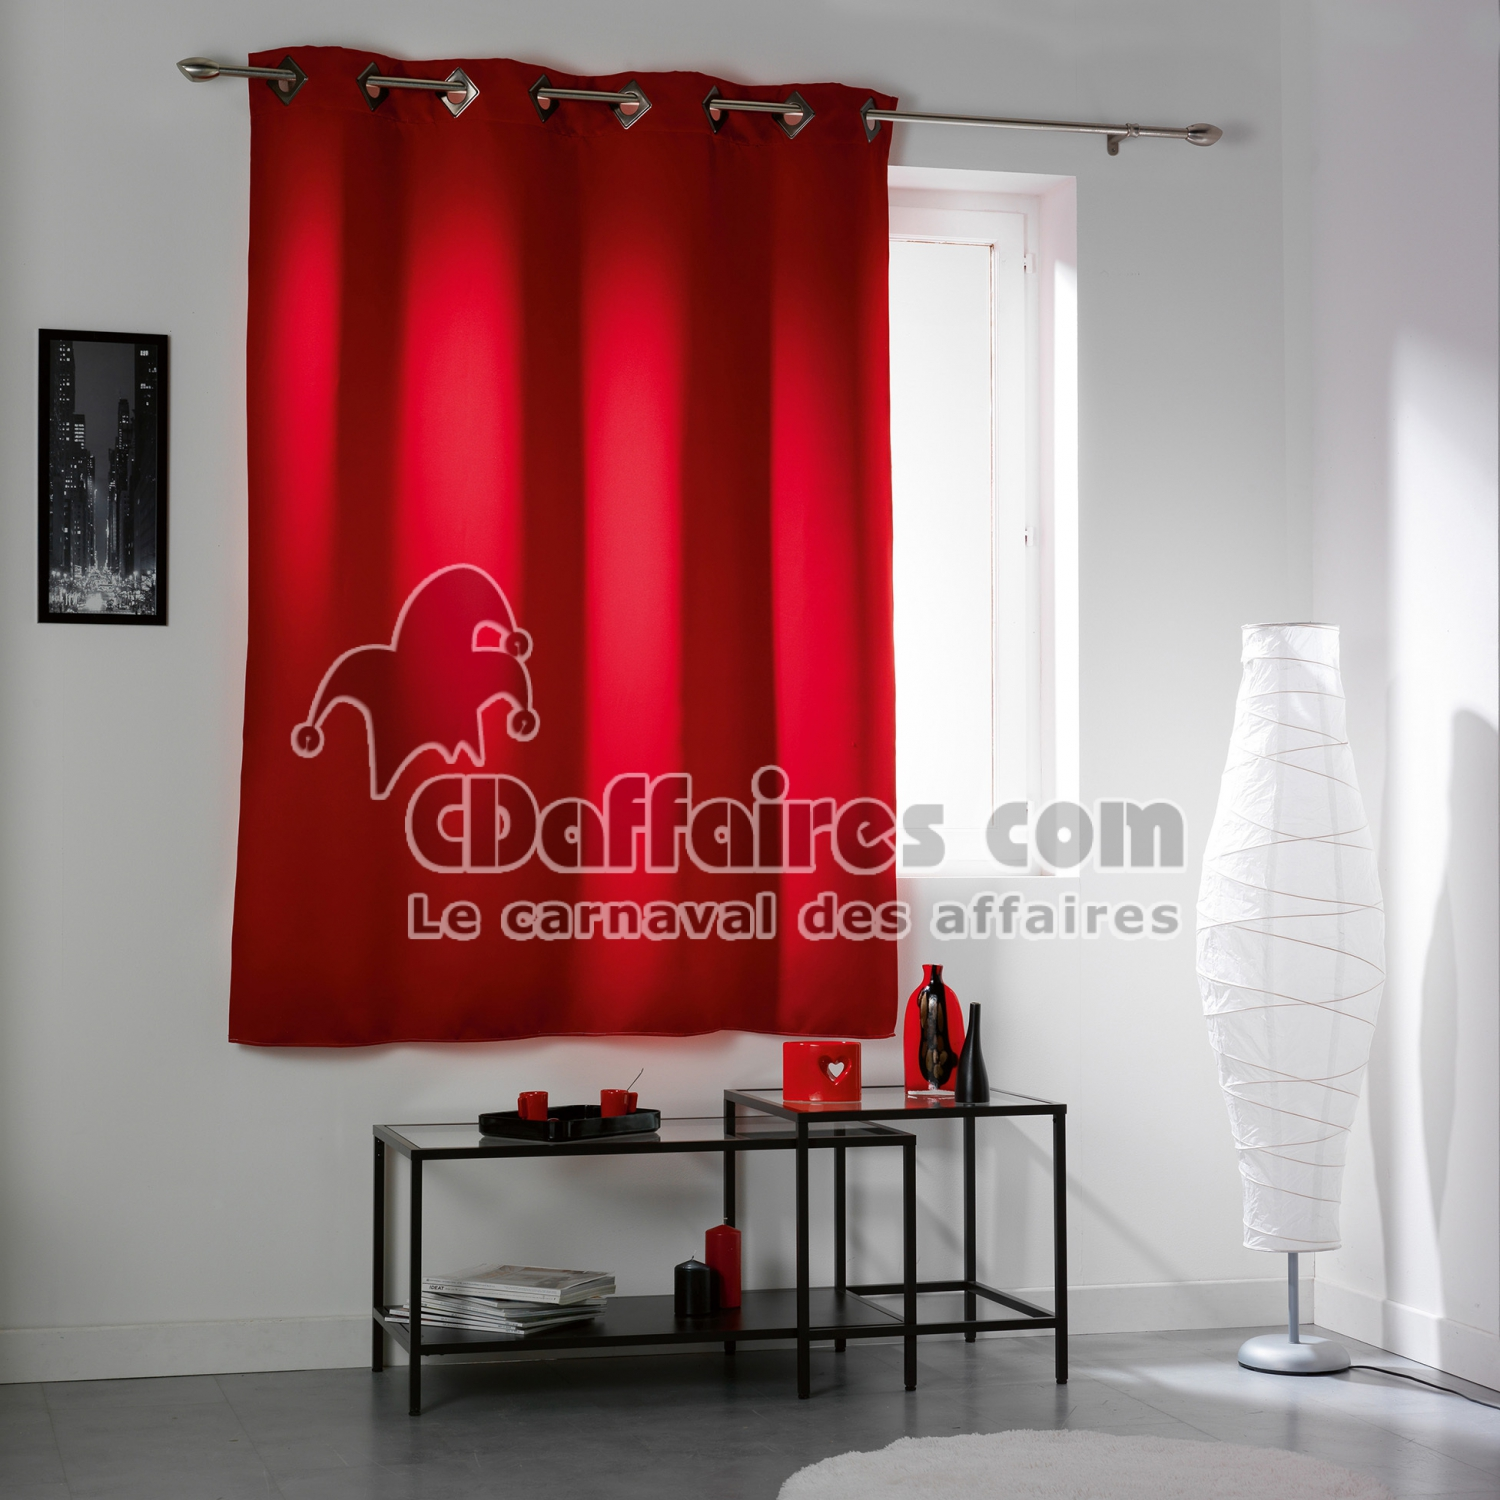 rideau a oeillets carres 140 x 180 cm occultant uni cocoon rouge cdaffaires. Black Bedroom Furniture Sets. Home Design Ideas